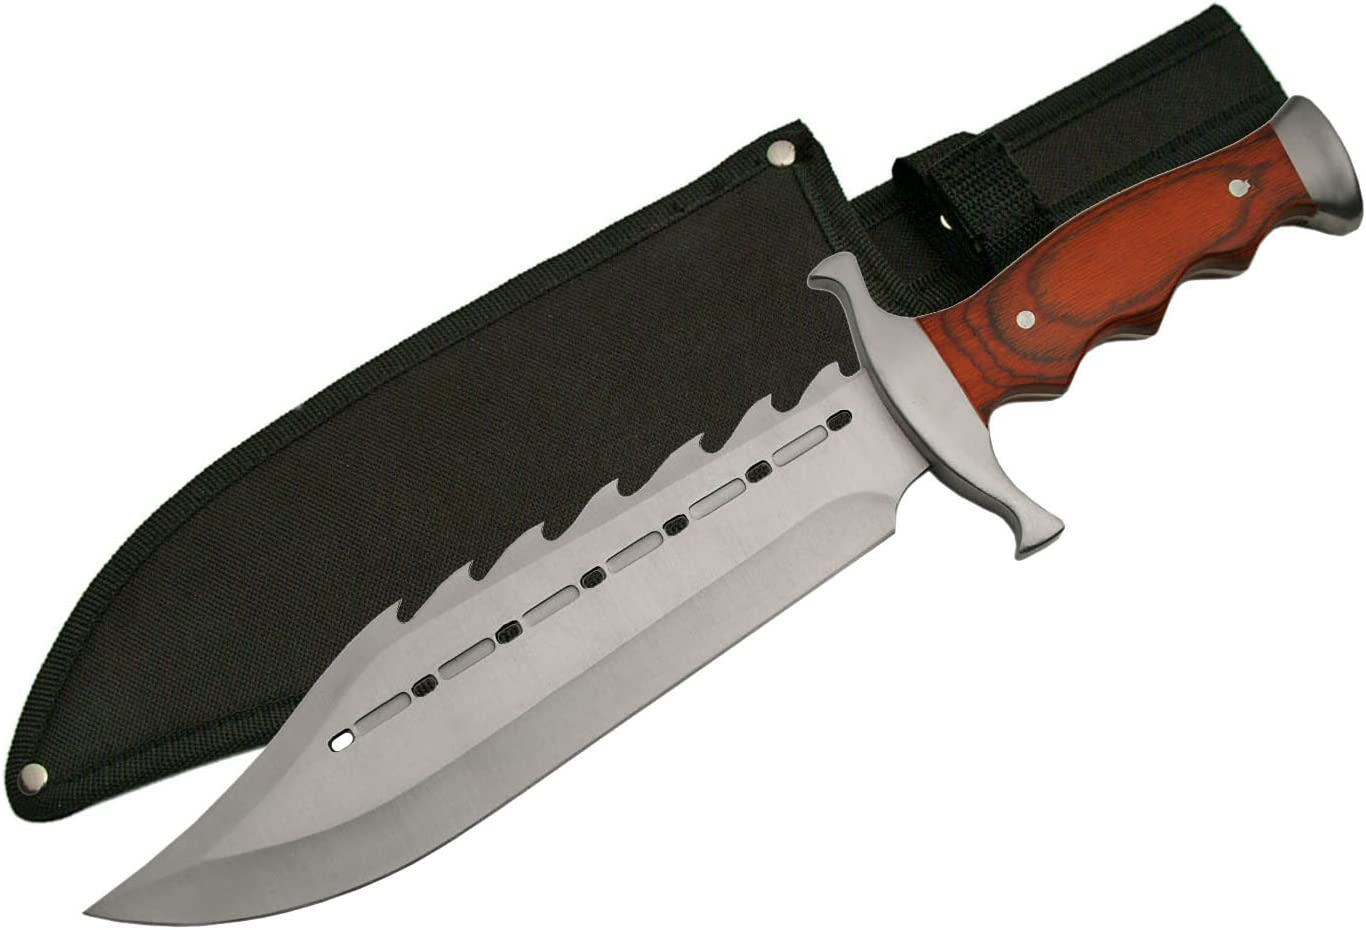 SZCO Supplies 211398 Gator Back Bowie Knife Stainless Steel Skinning Knife